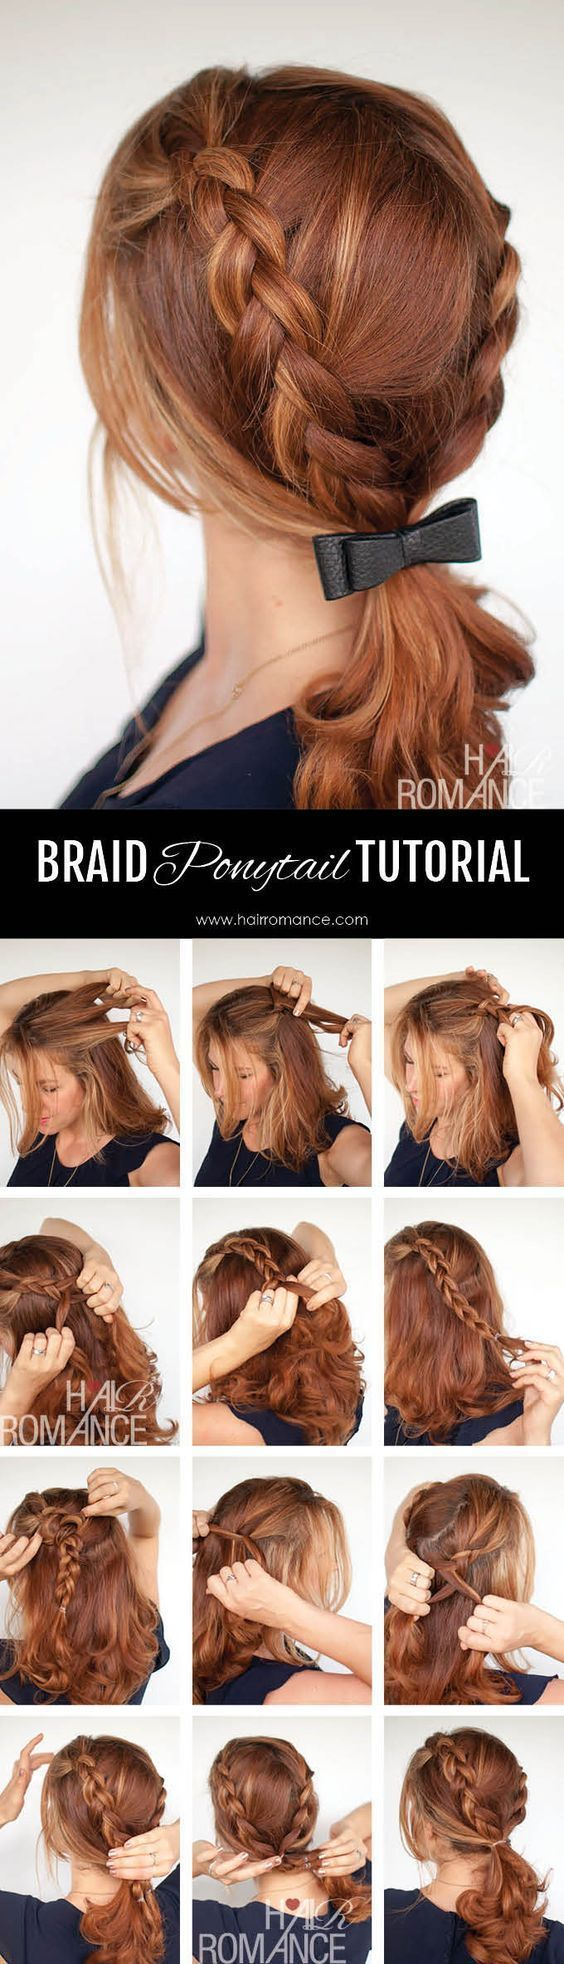 11 Ways to Style Your Lobs (Long bob Hairstyle Ideas) - Pretty Designs